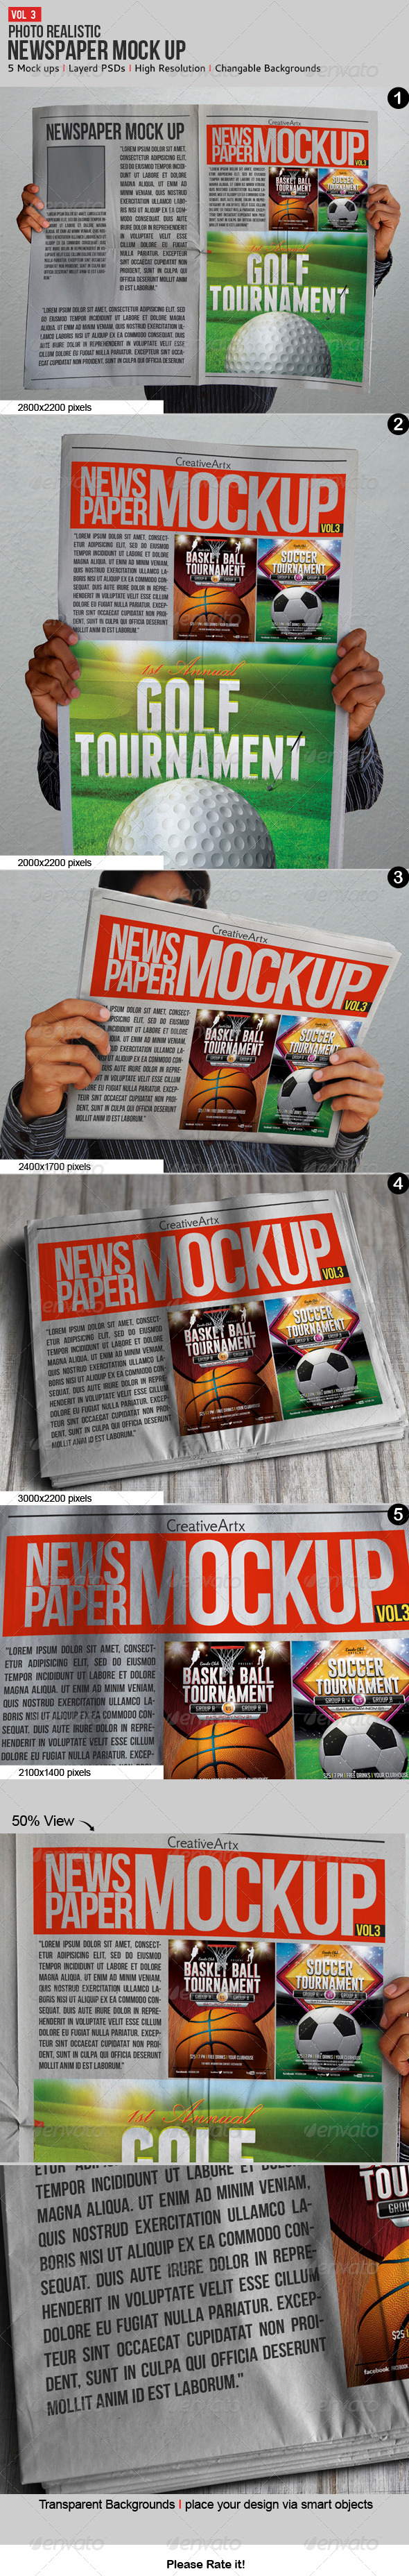 Newspaper / Newsletter Mock-Up - V.3 - Product Mock-Ups Graphics